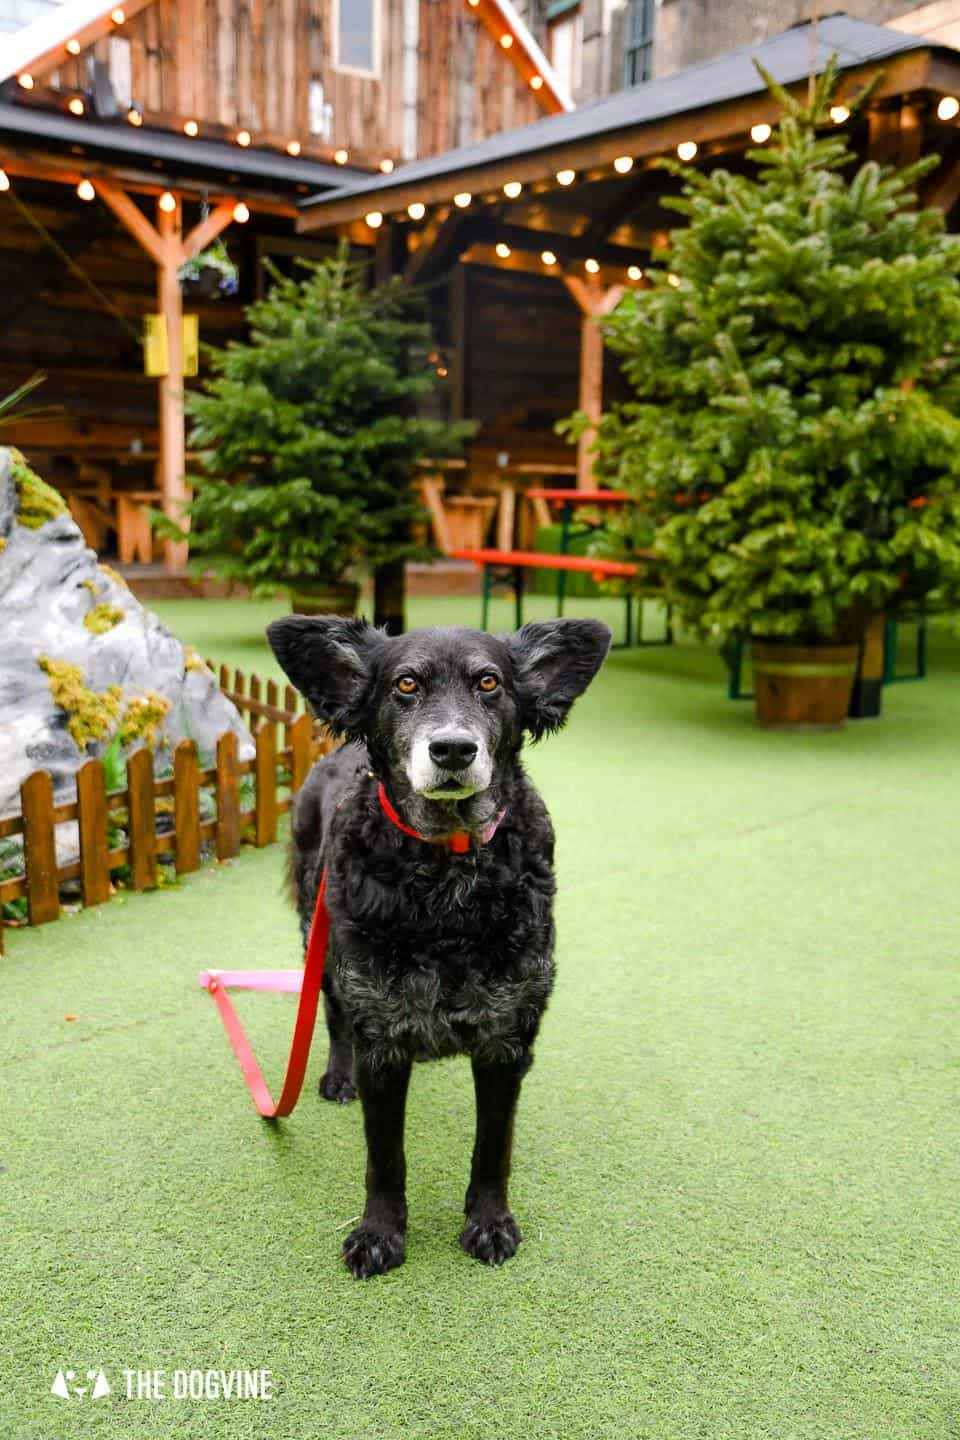 10 Ways For Your Dog's Christmas To Be Fabulous in London - Christmas Markets